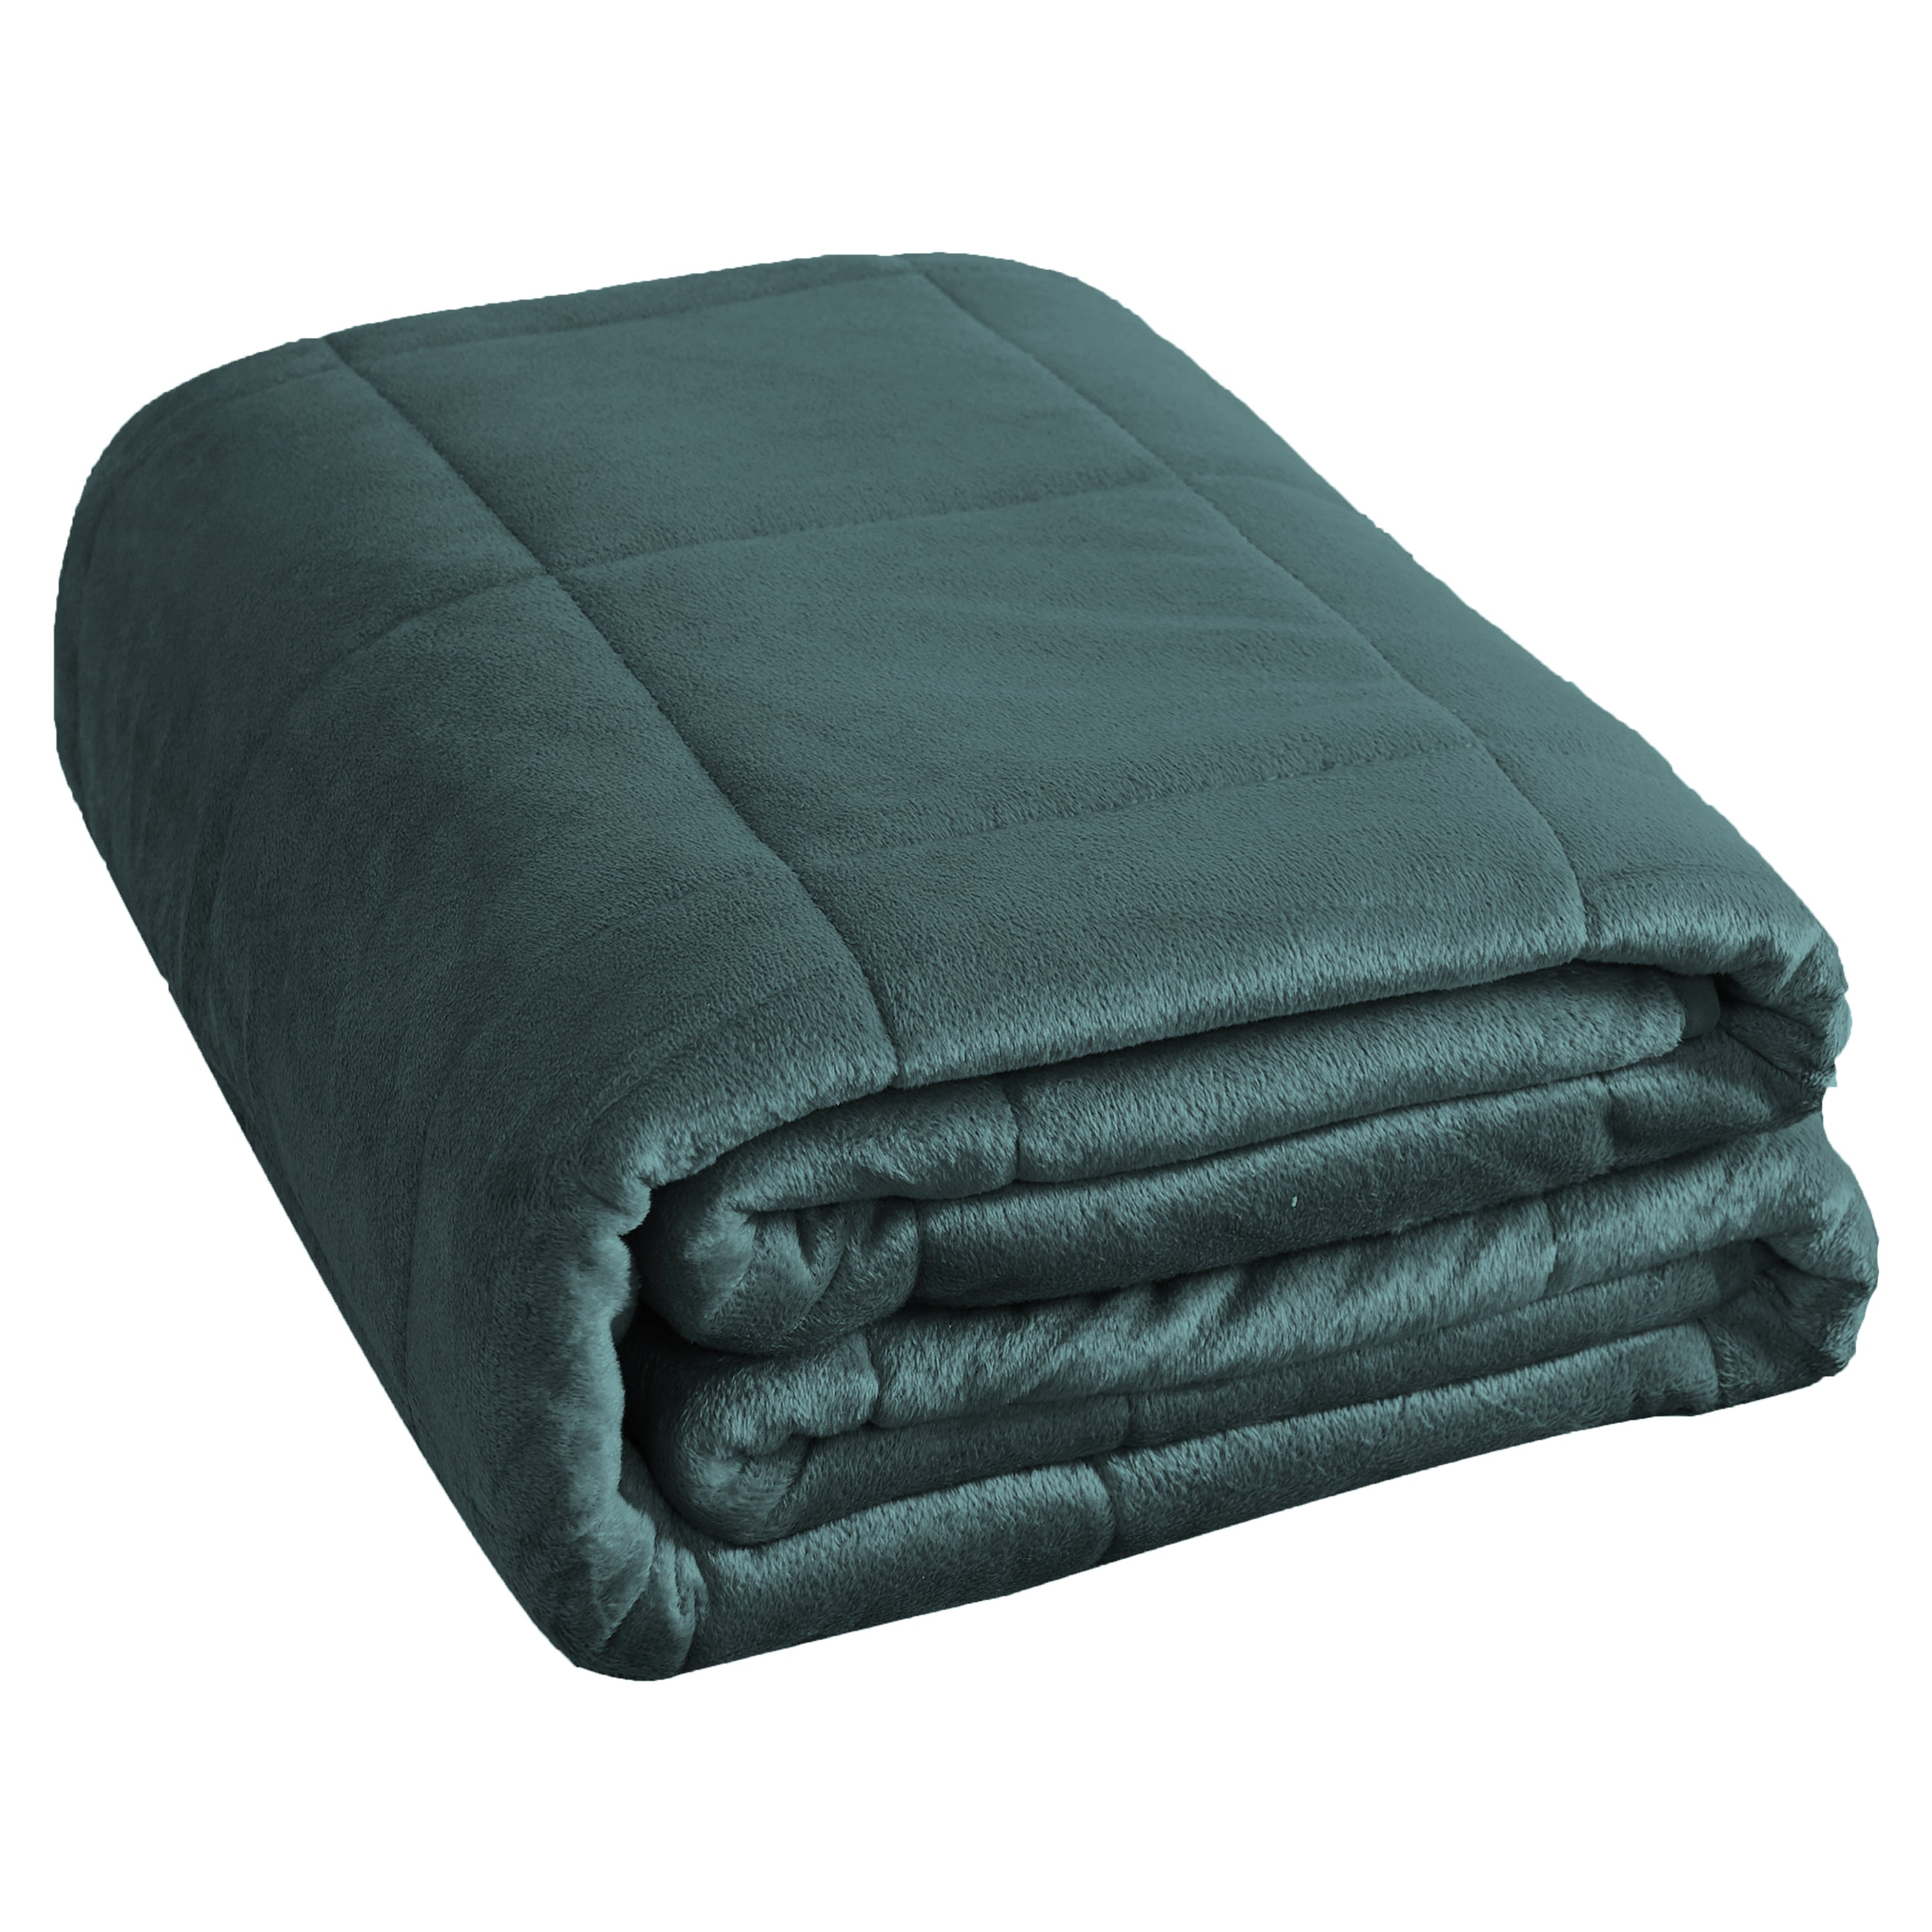 Plush Mink Weighted Oversized Blanket 15 & 20 lb